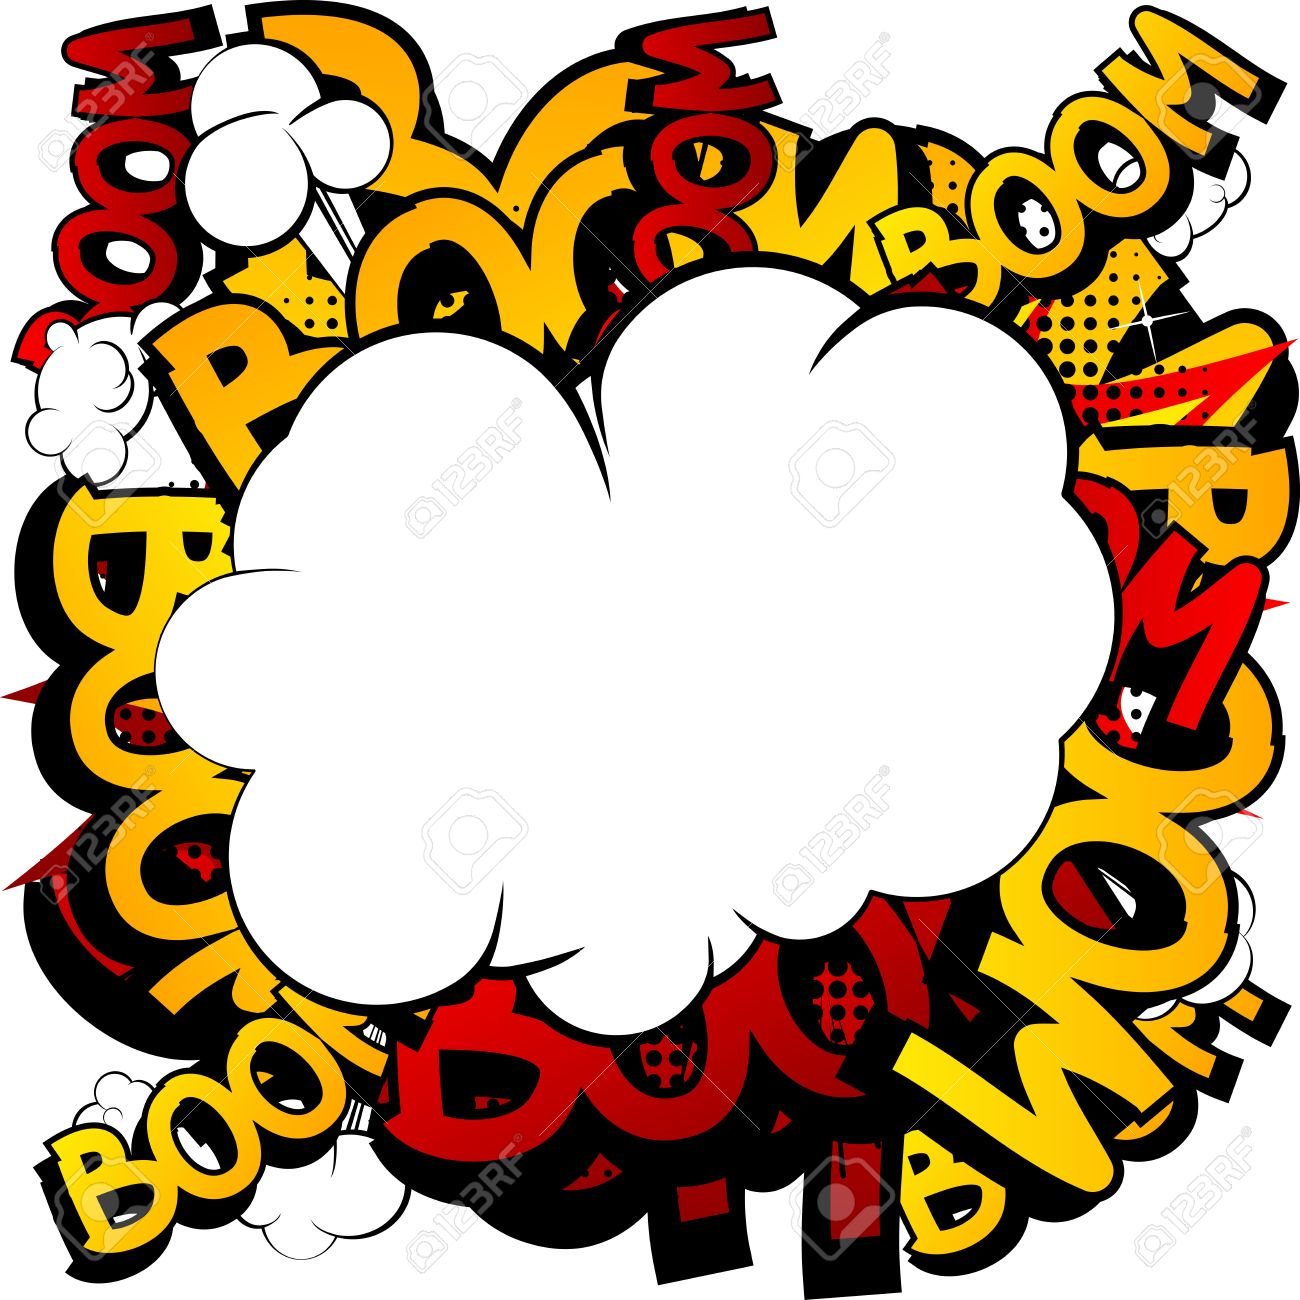 Comic Book Cartoon Explosion With A Blank Cloud Stock Vector